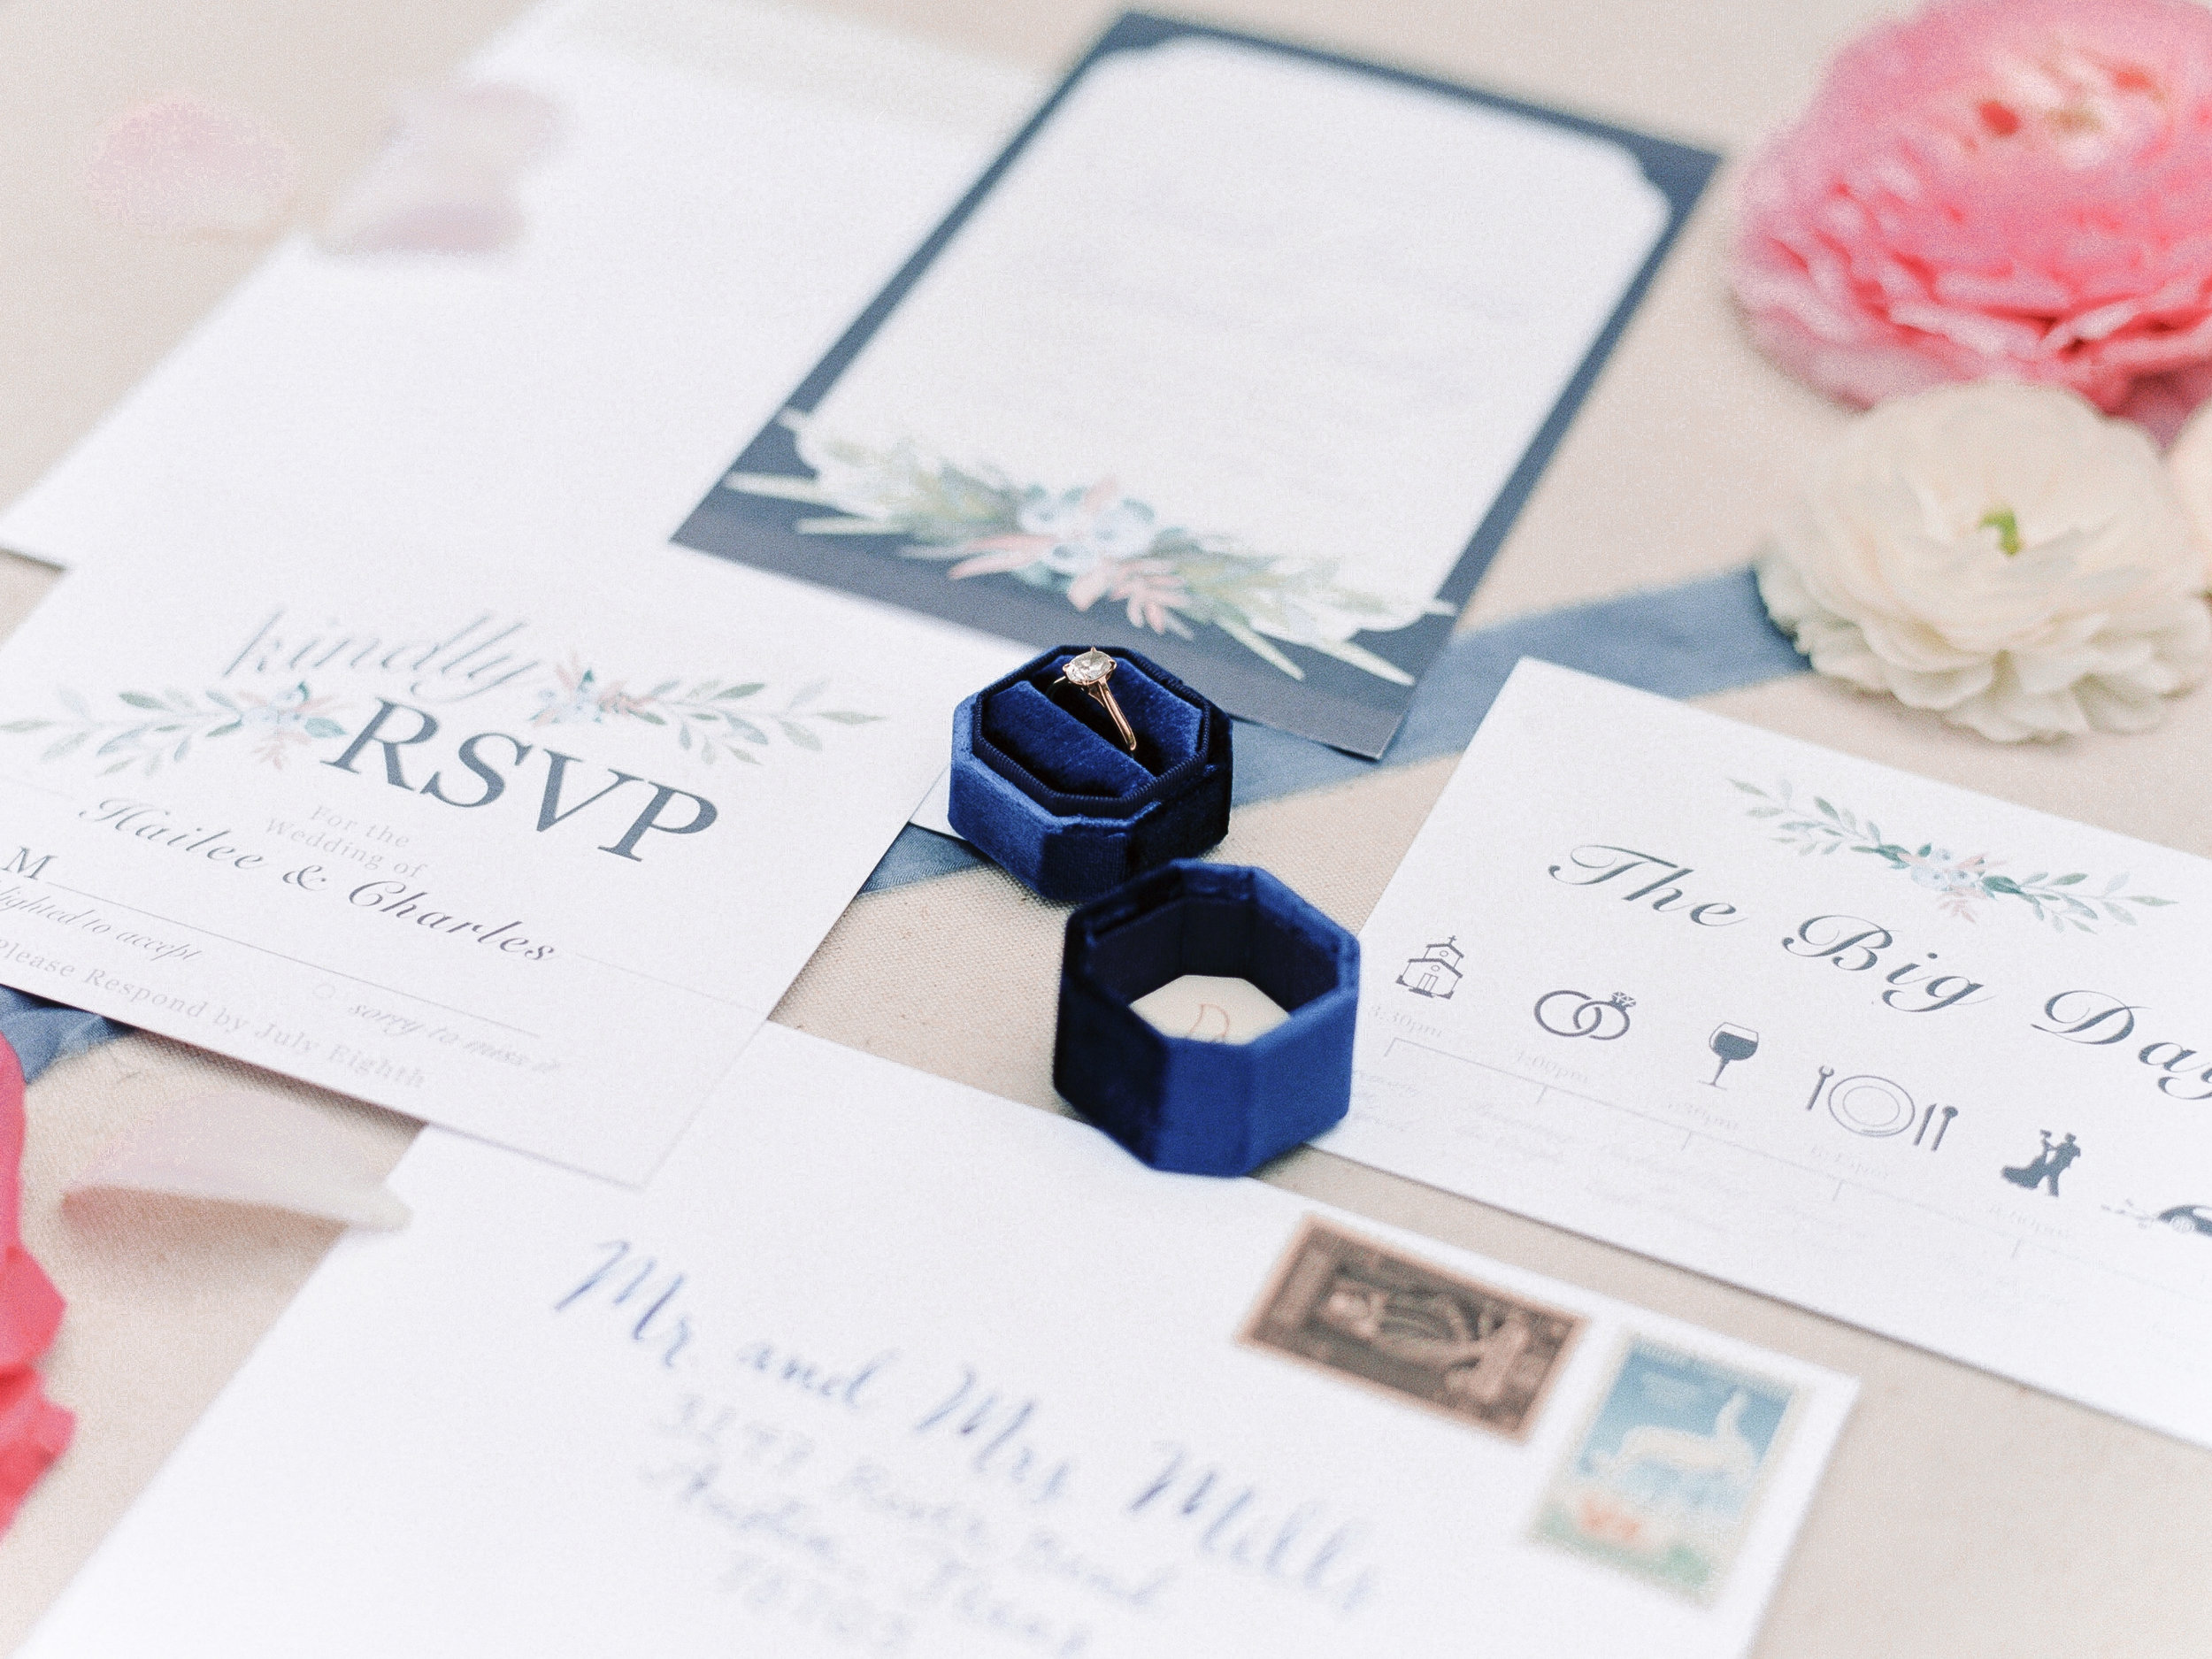 Stationery | Andrea Haughey Design  Photography | Ava Maria Photography  Ring Box | Lace Byrd  Ribbon | Tono & co.  Florals | Flowers & Thyme